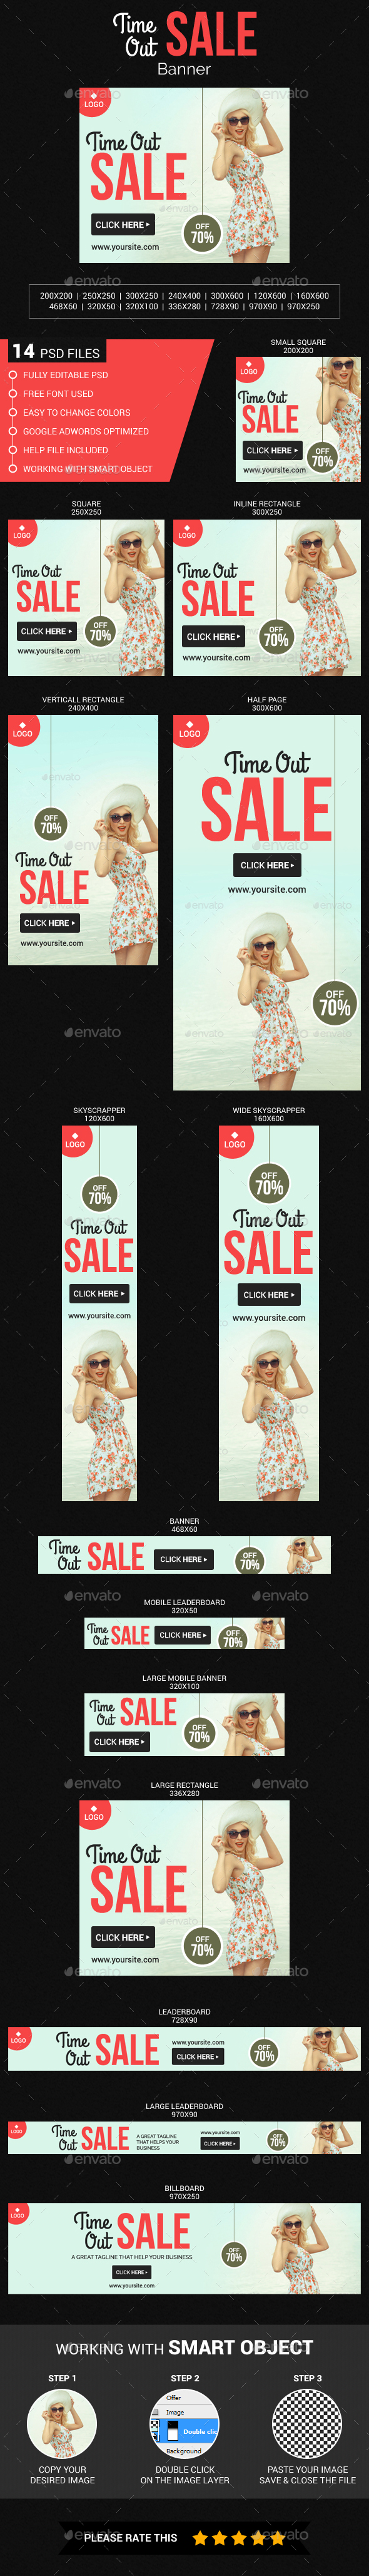 Time Out Sale - Banners & Ads Web Elements